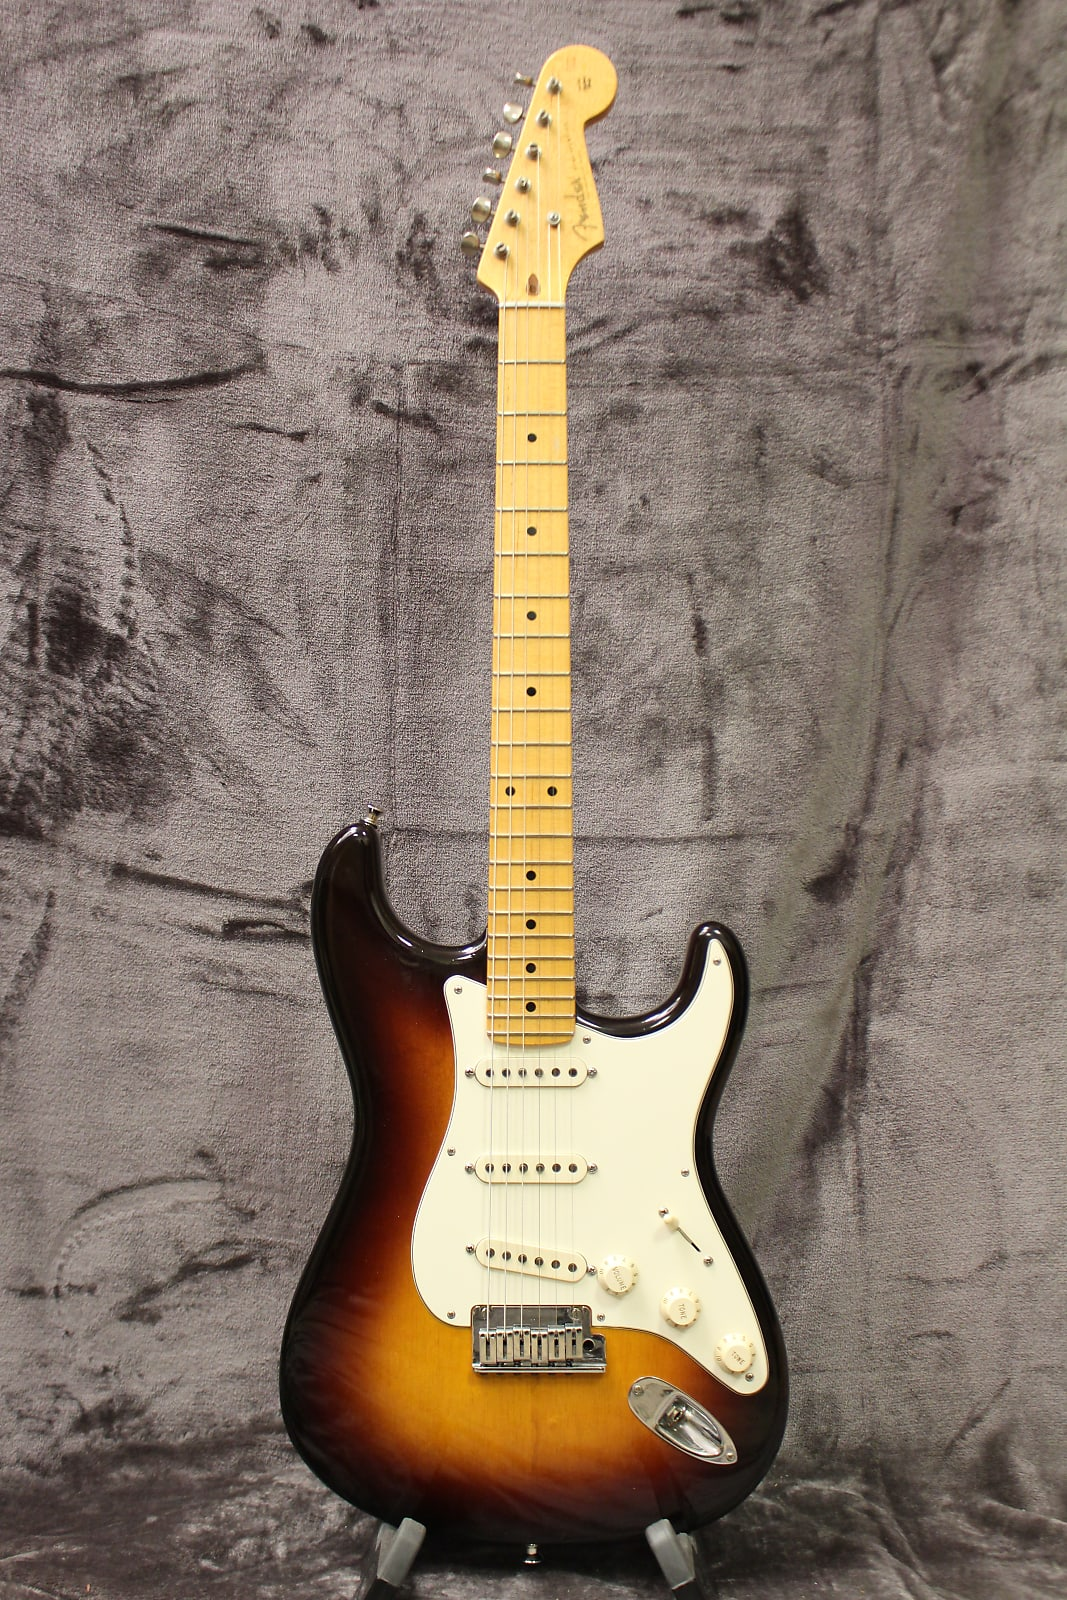 Fender Custom Shop Stratocaster Pro Closet Classic 2012 Sunburst